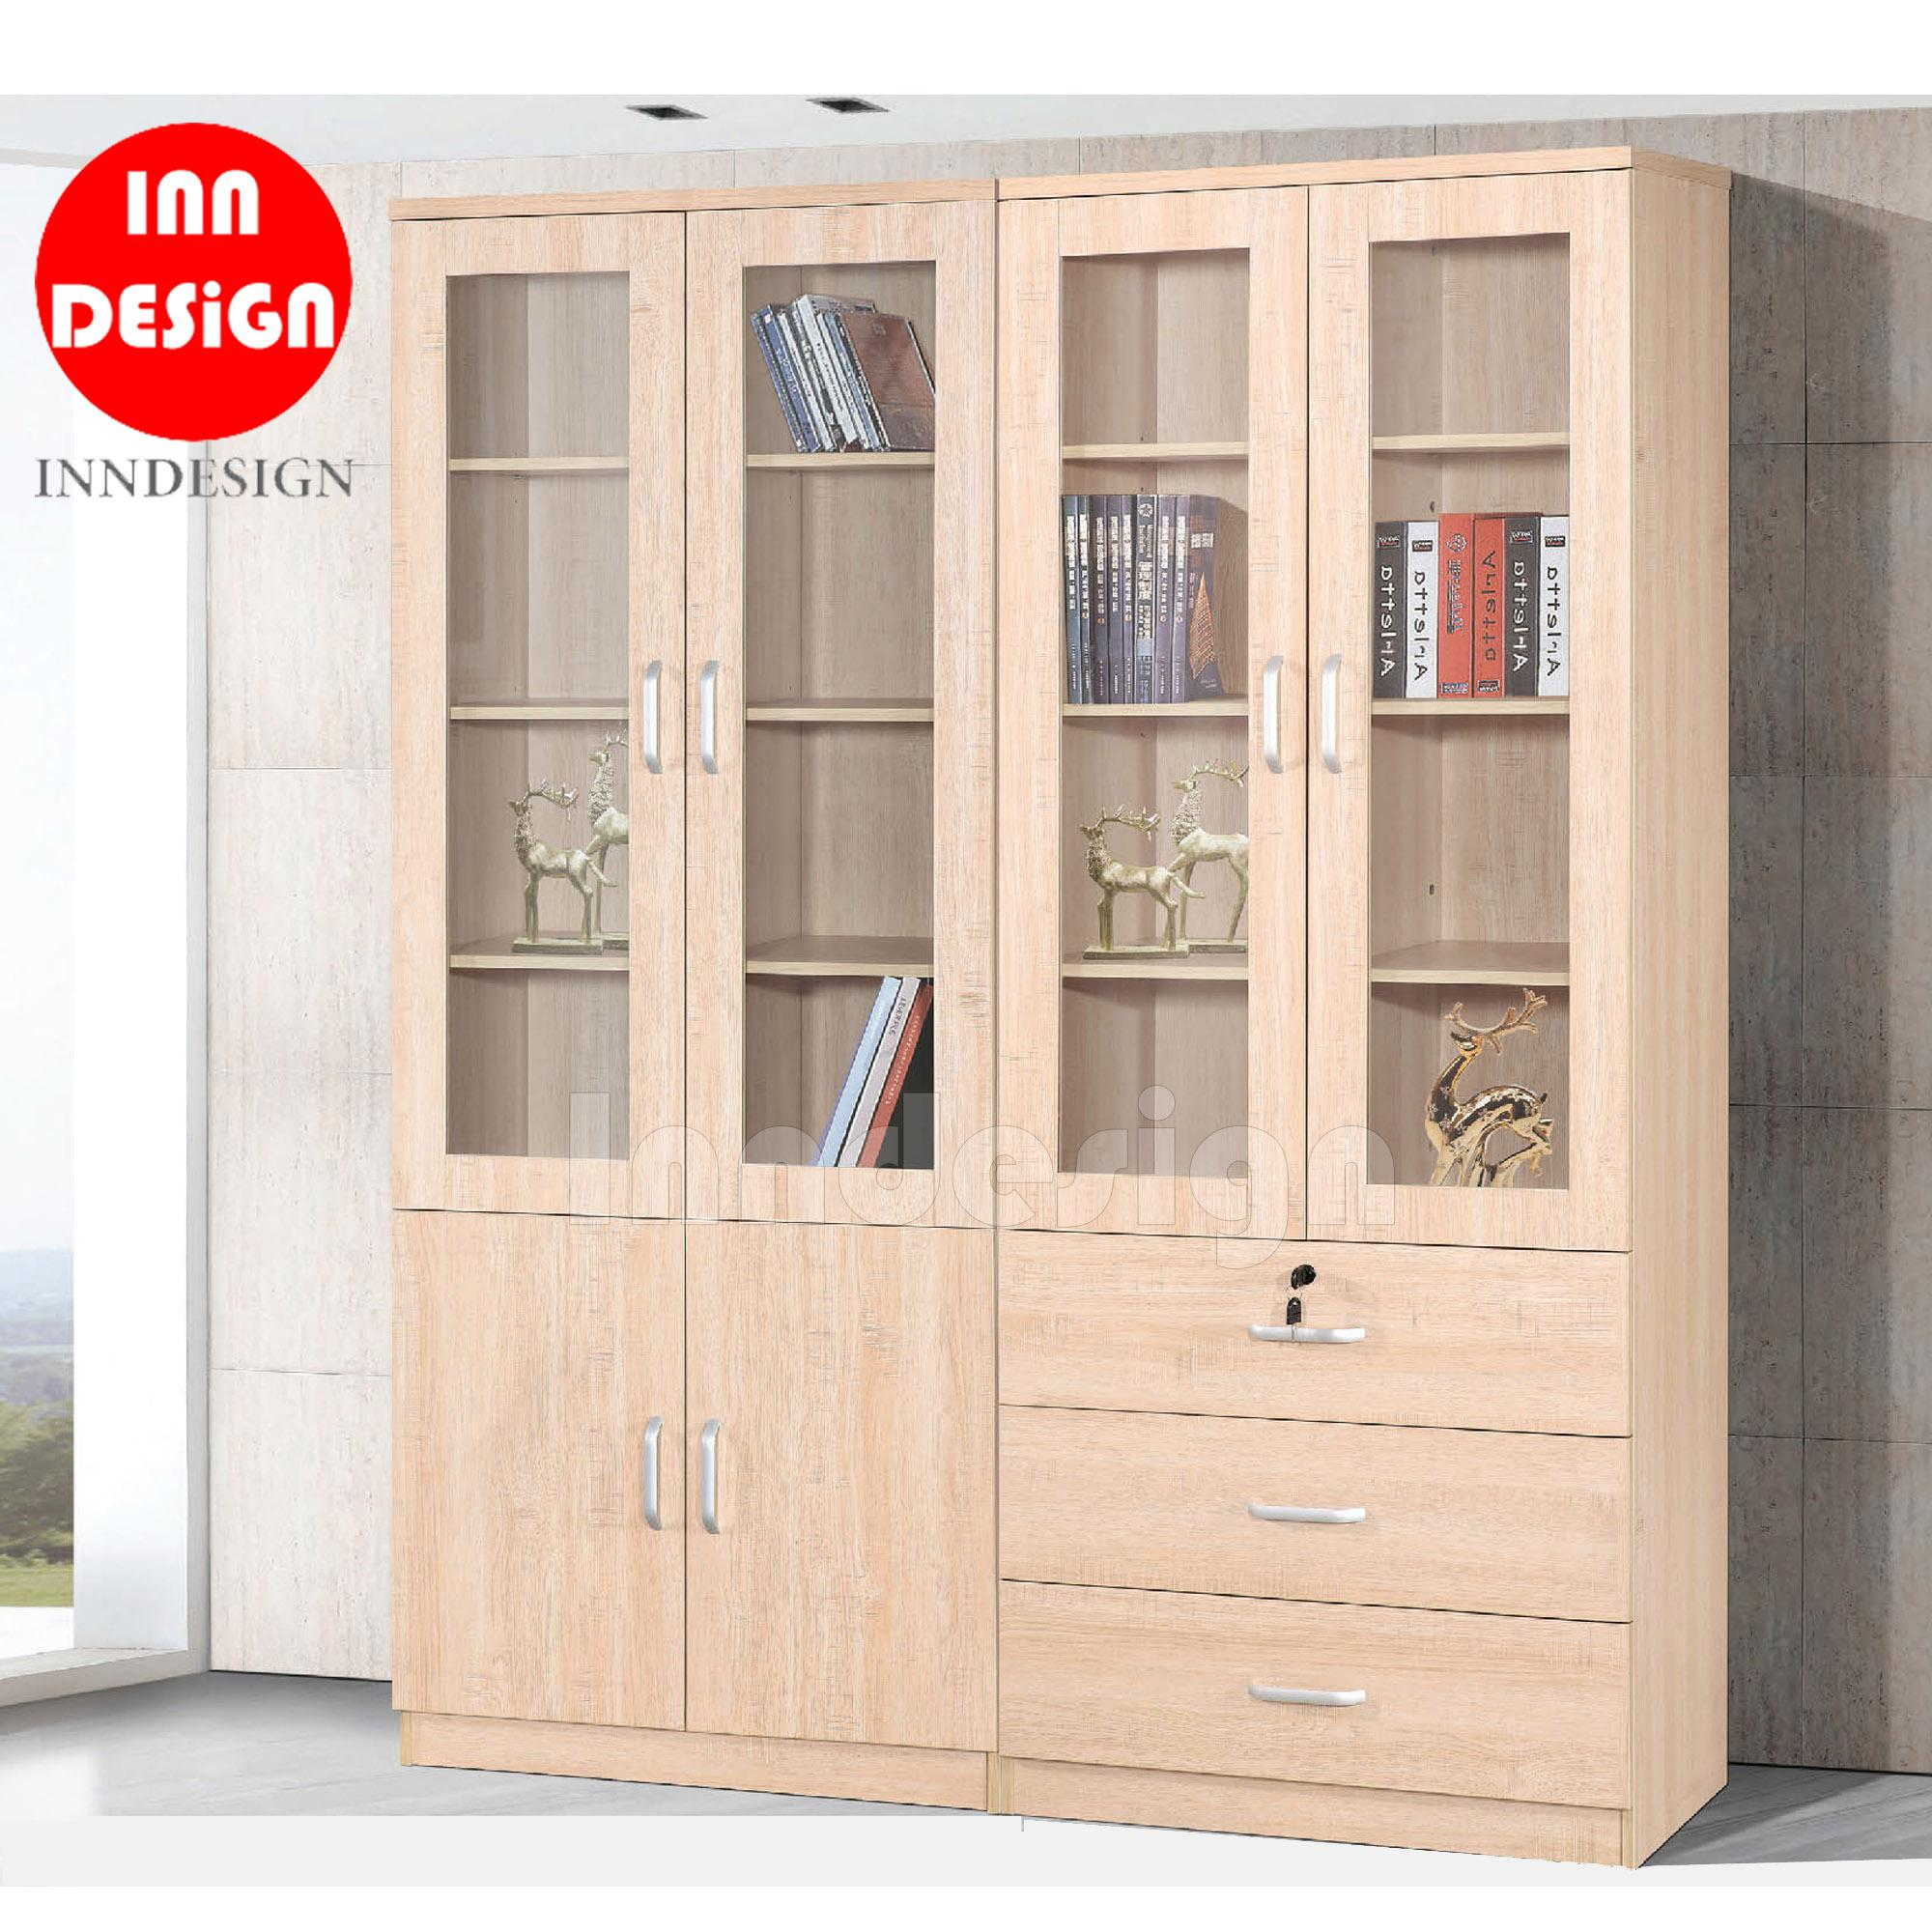 Mojitomo IV Display Bookshelf with Drawers (FULLY MDF)